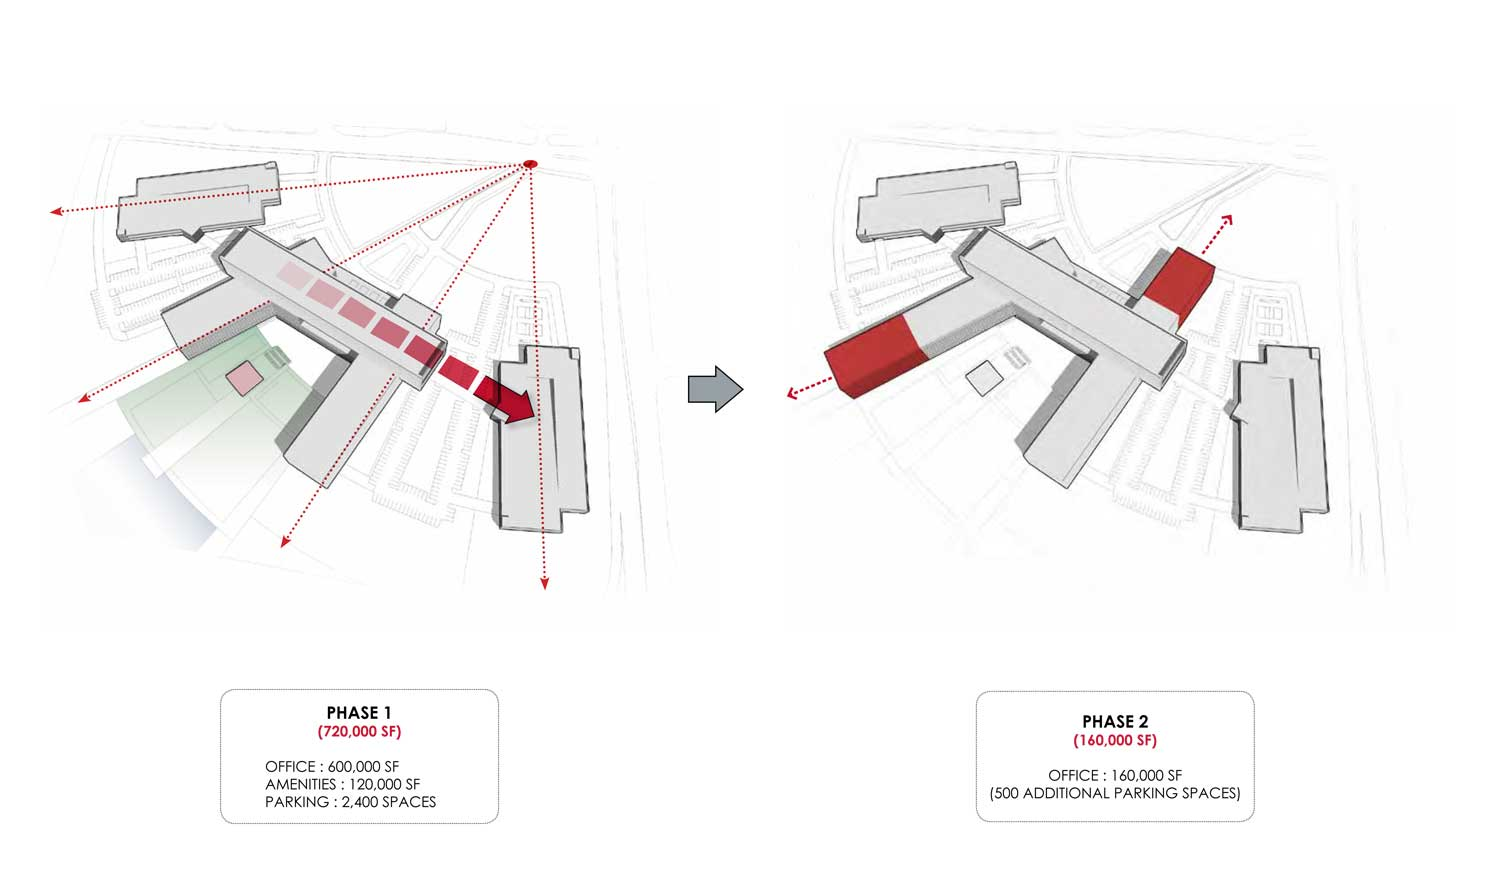 Phasing Diagrams Geottsch Partners}